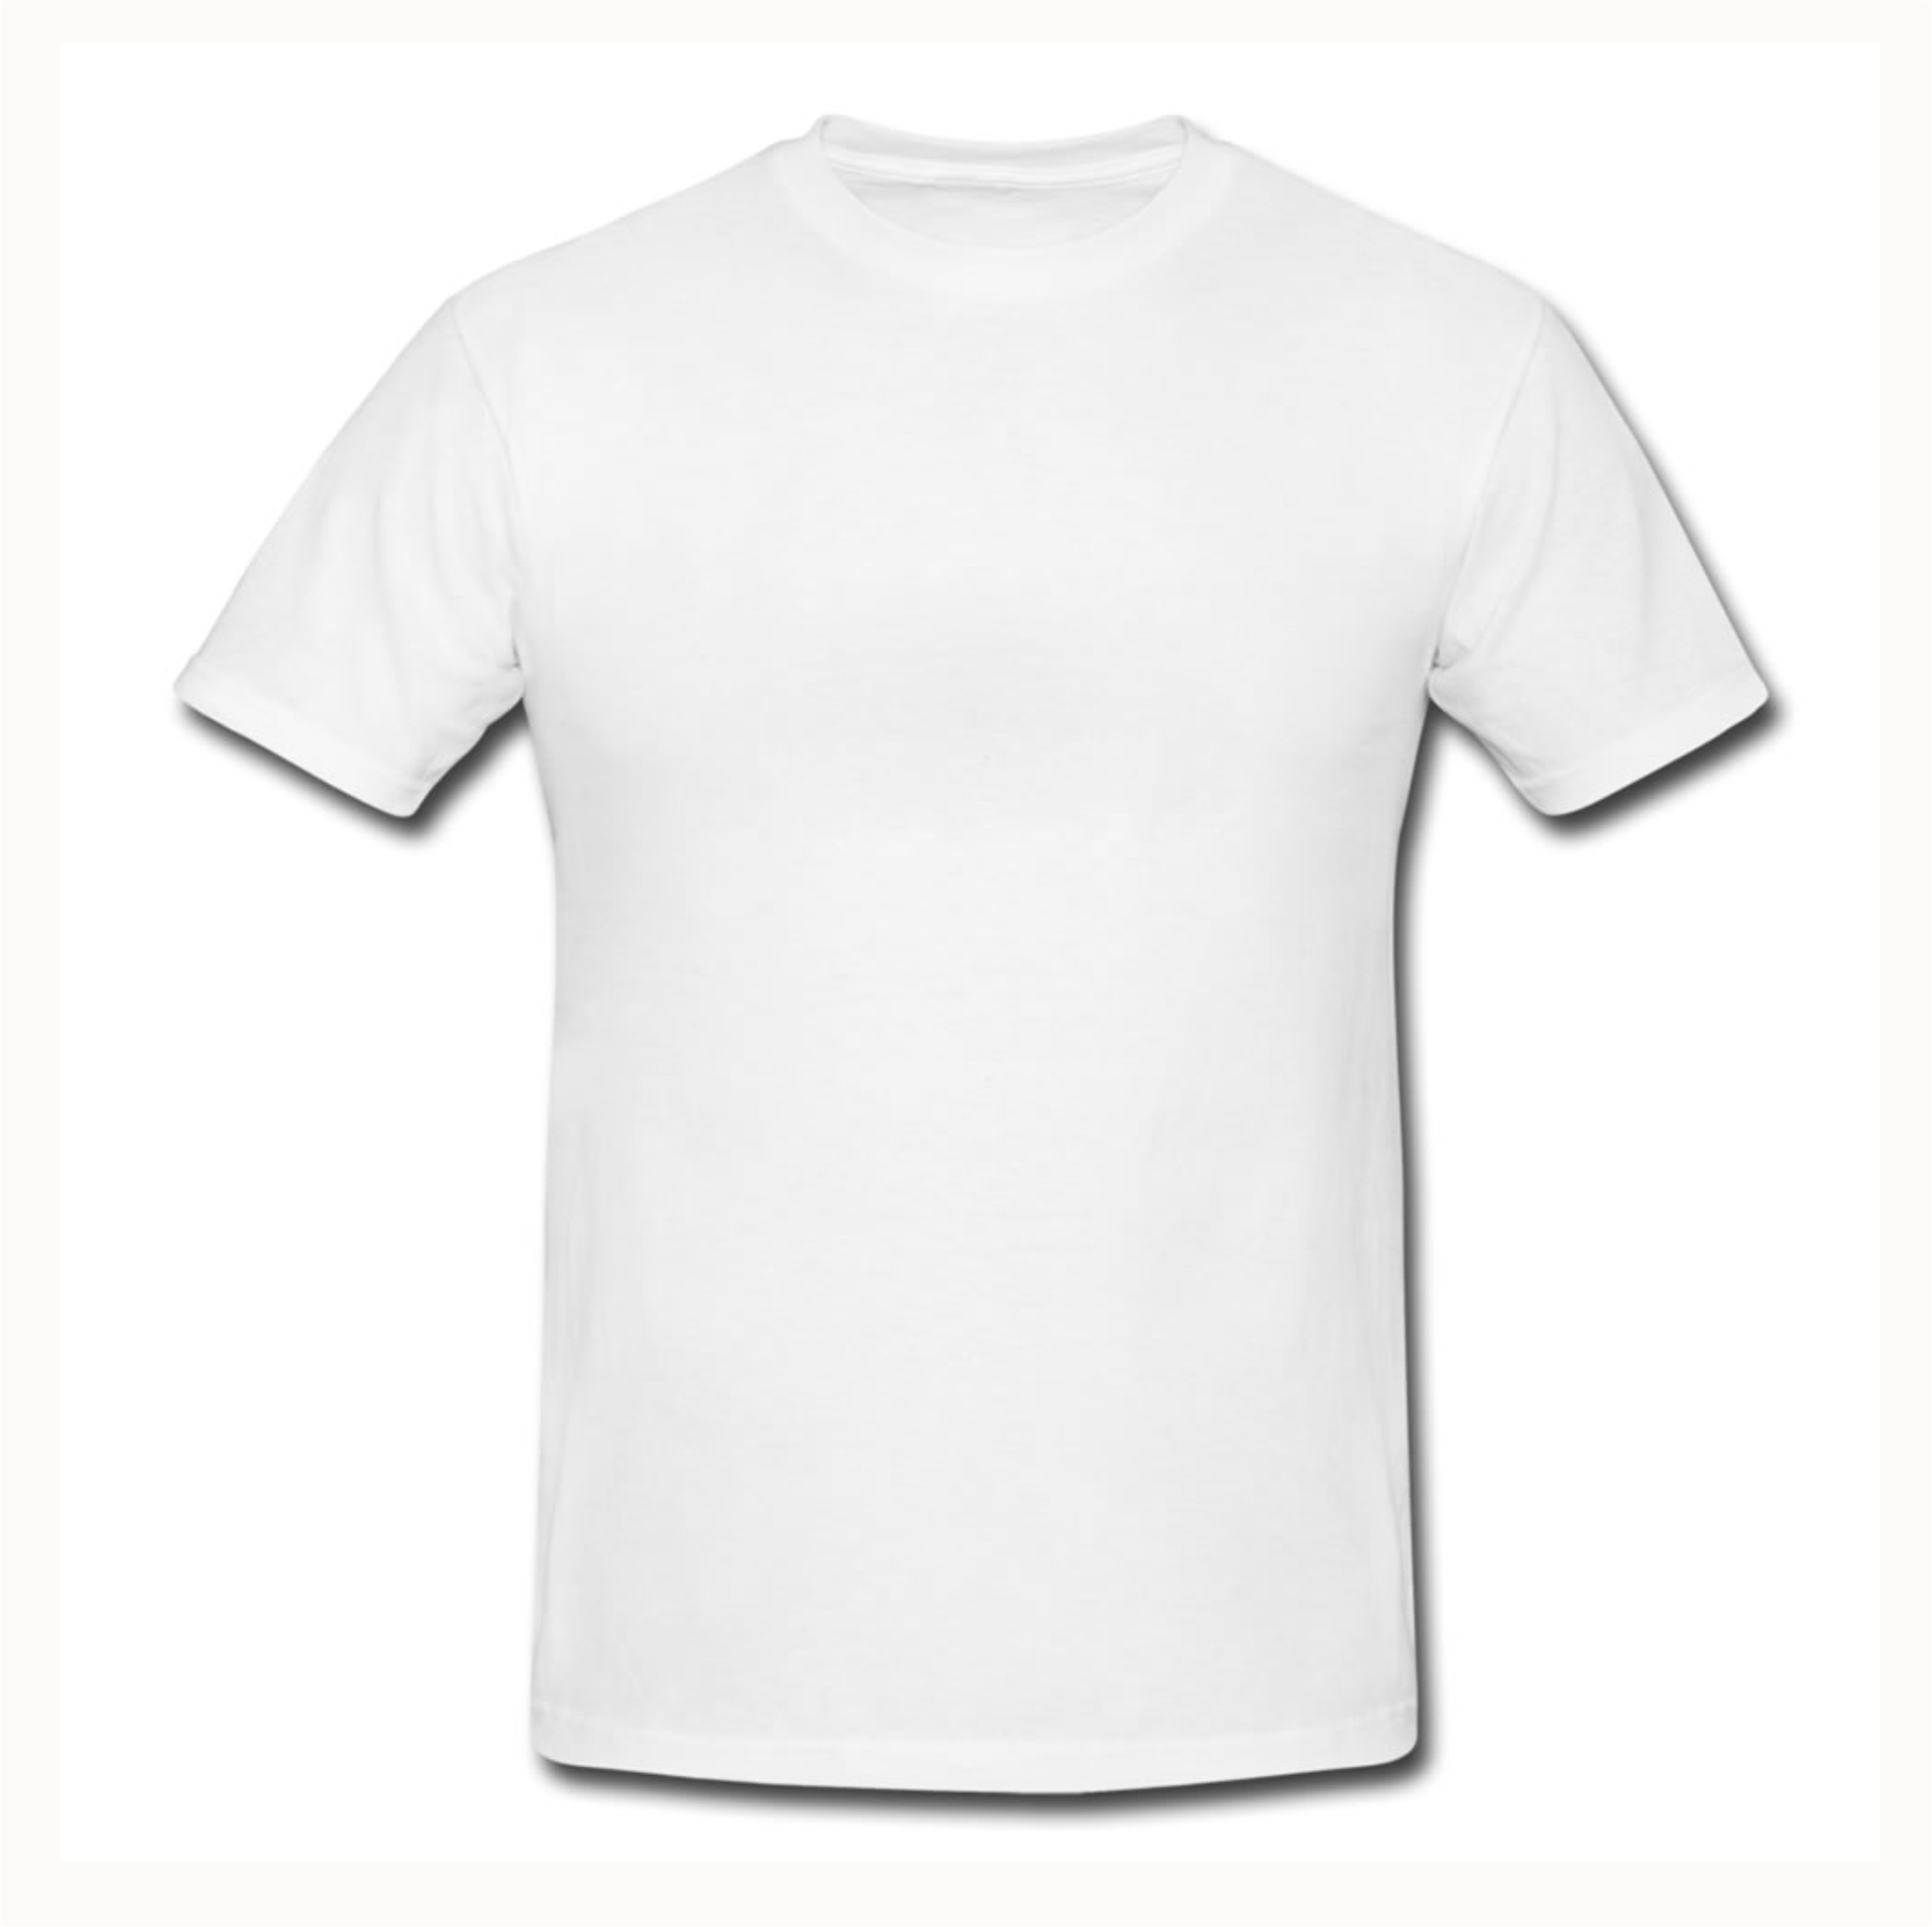 sublimation t shirt white sublimation t shirt suppliers